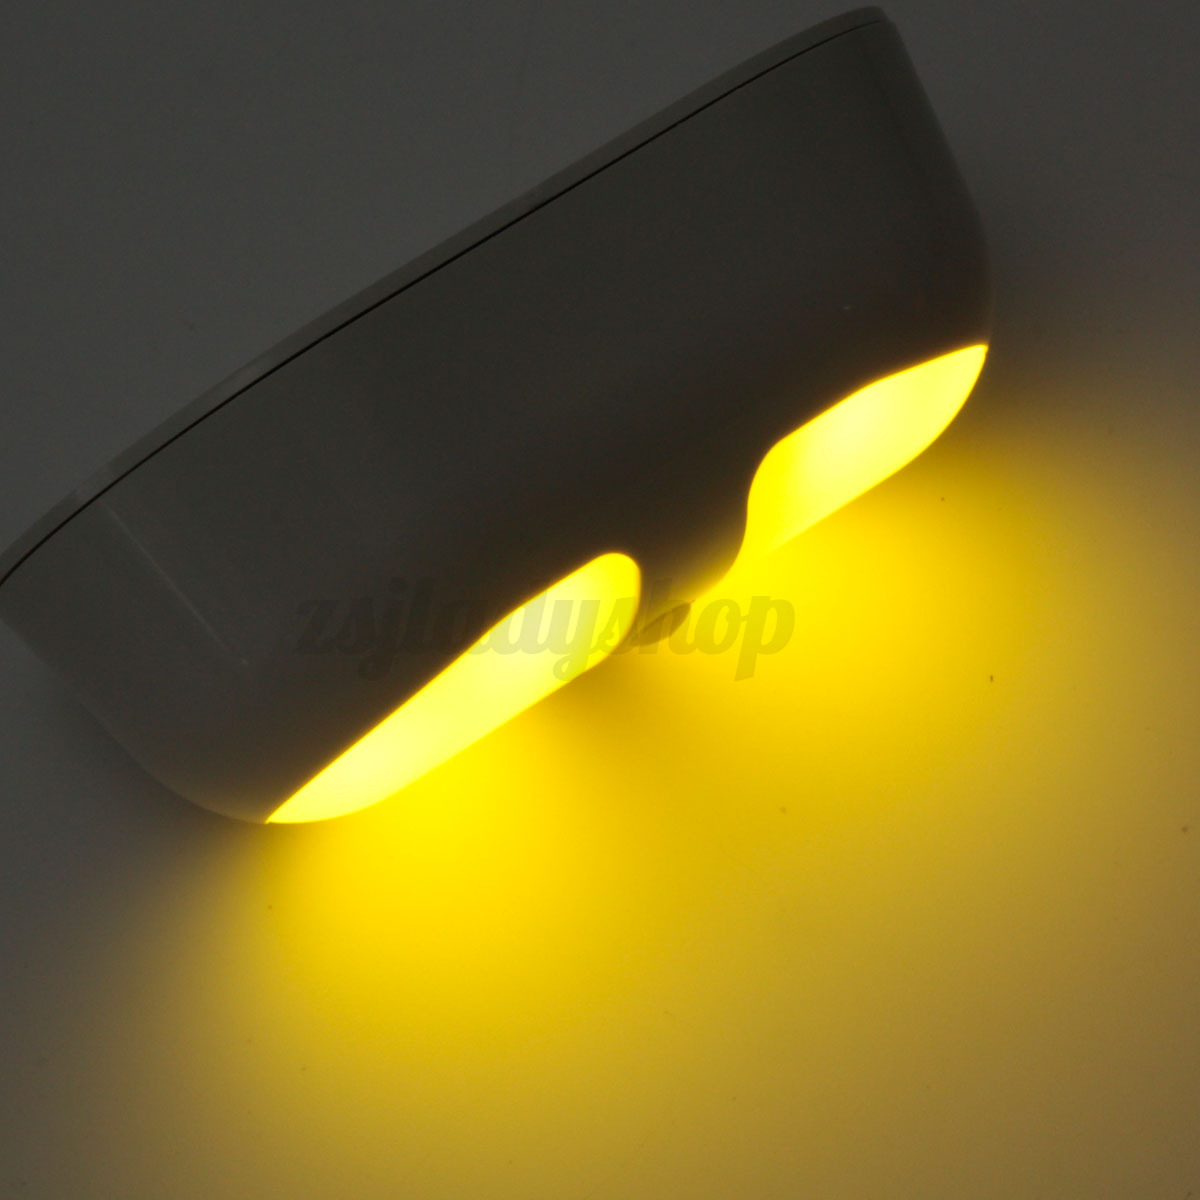 Wireless Led Night Light Human Motion Sensor Lamp Battery